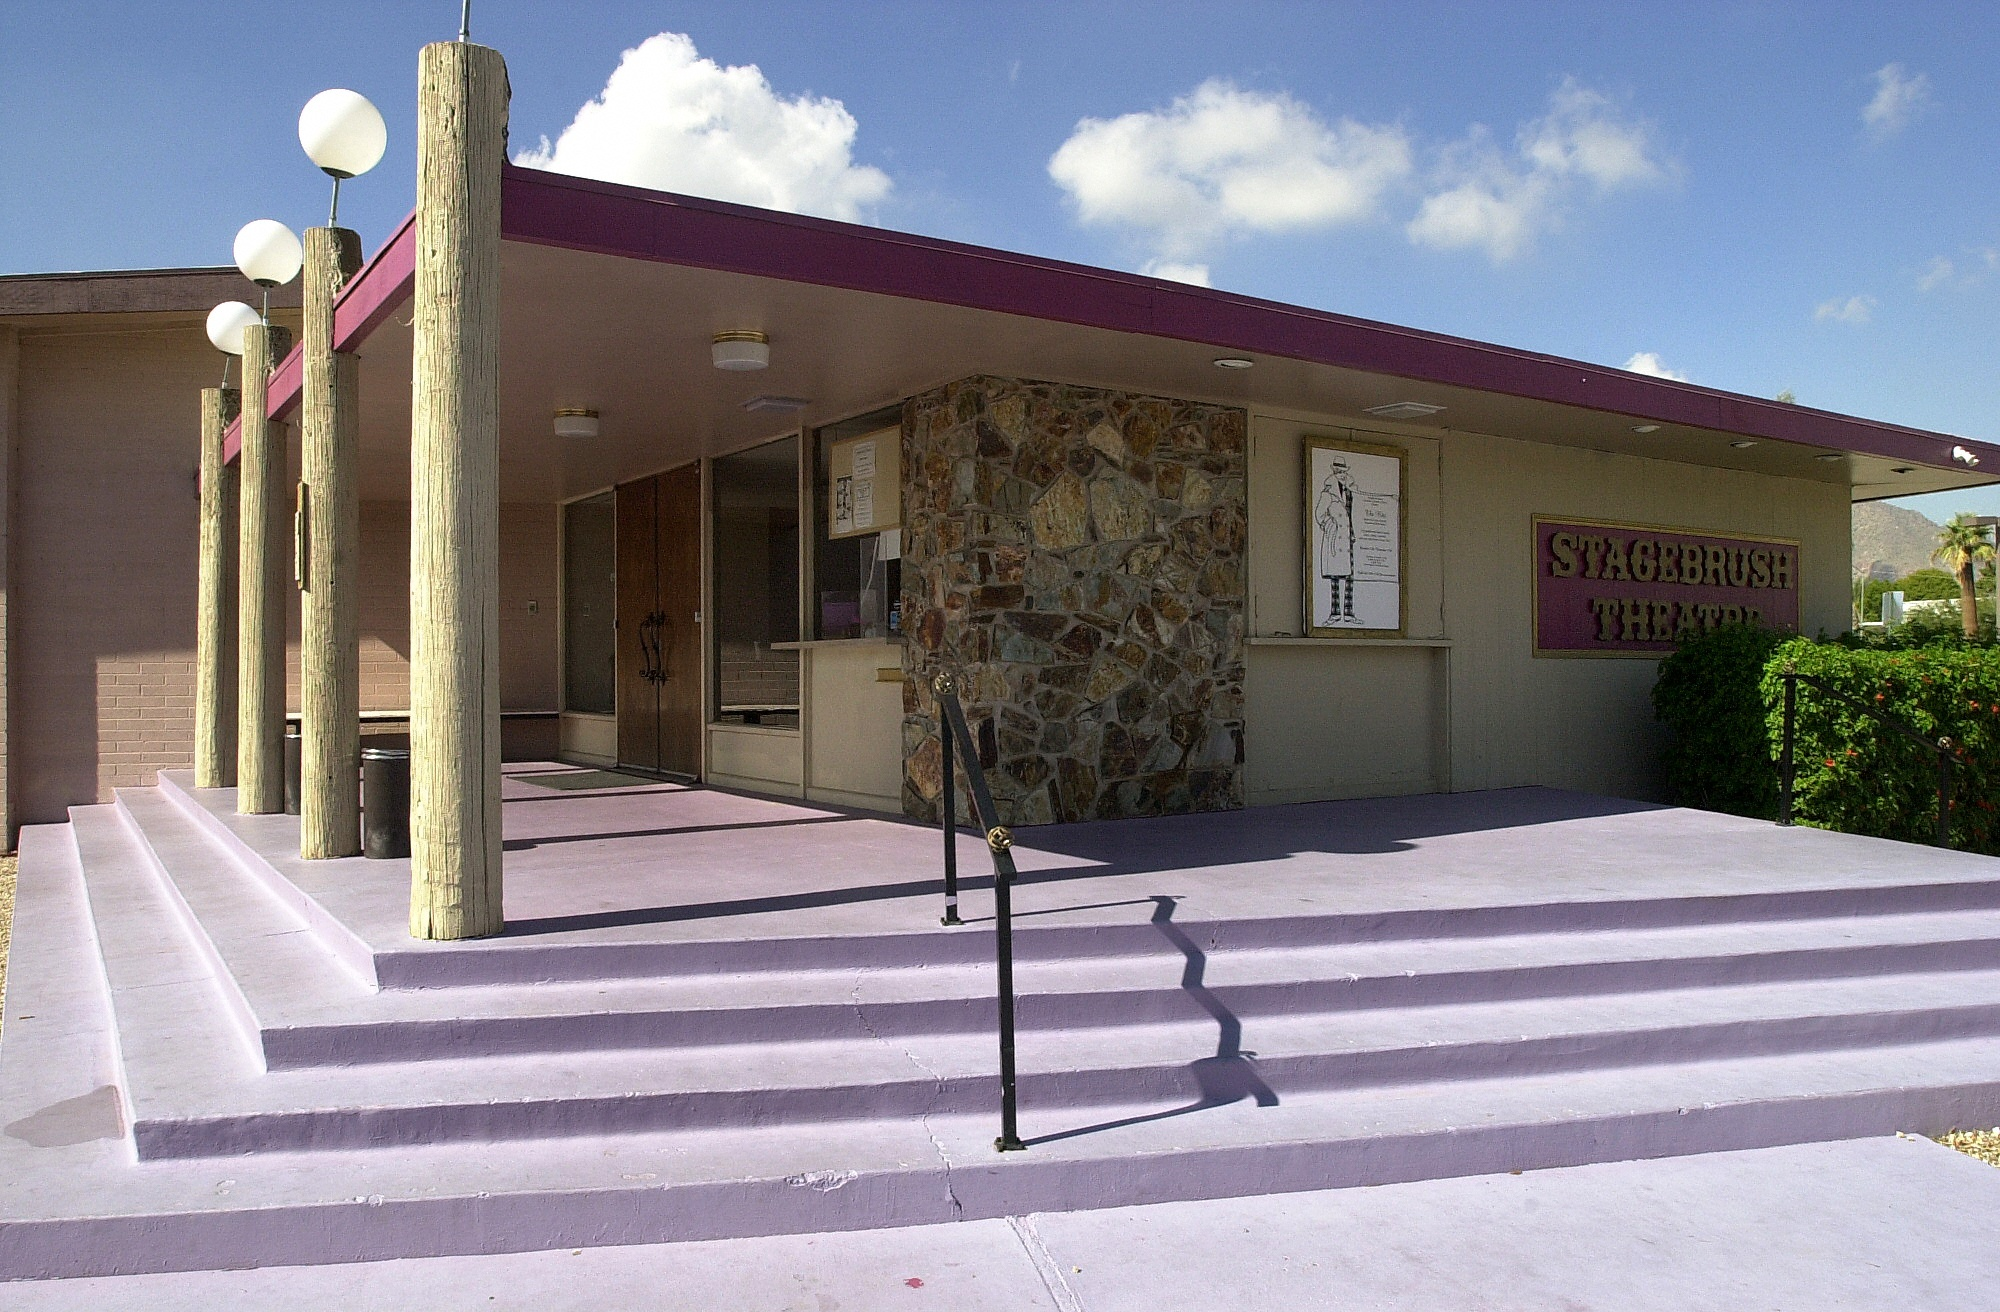 Stagebrush Theatre, home of Greasepaint Youtheatre and Scottsdale Community Players. (Photo credit unknown)